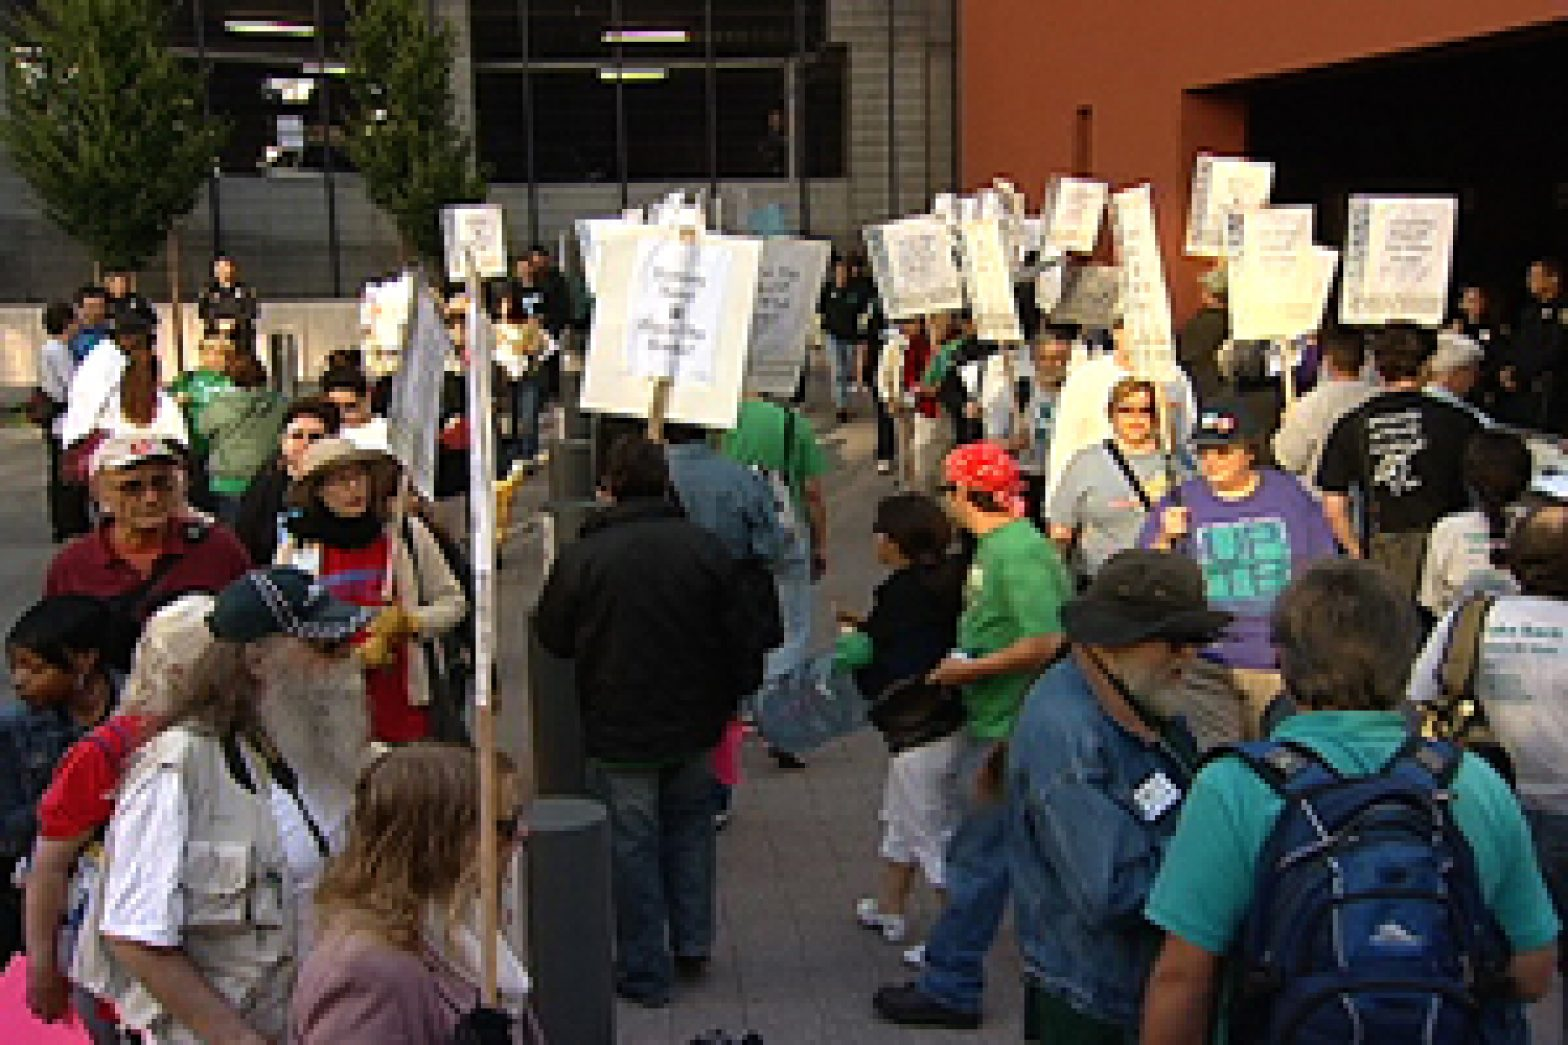 Staff protest outside regents' meeting at UCSF Mission Bay campus. Photo by Christi Morales/The Public Press